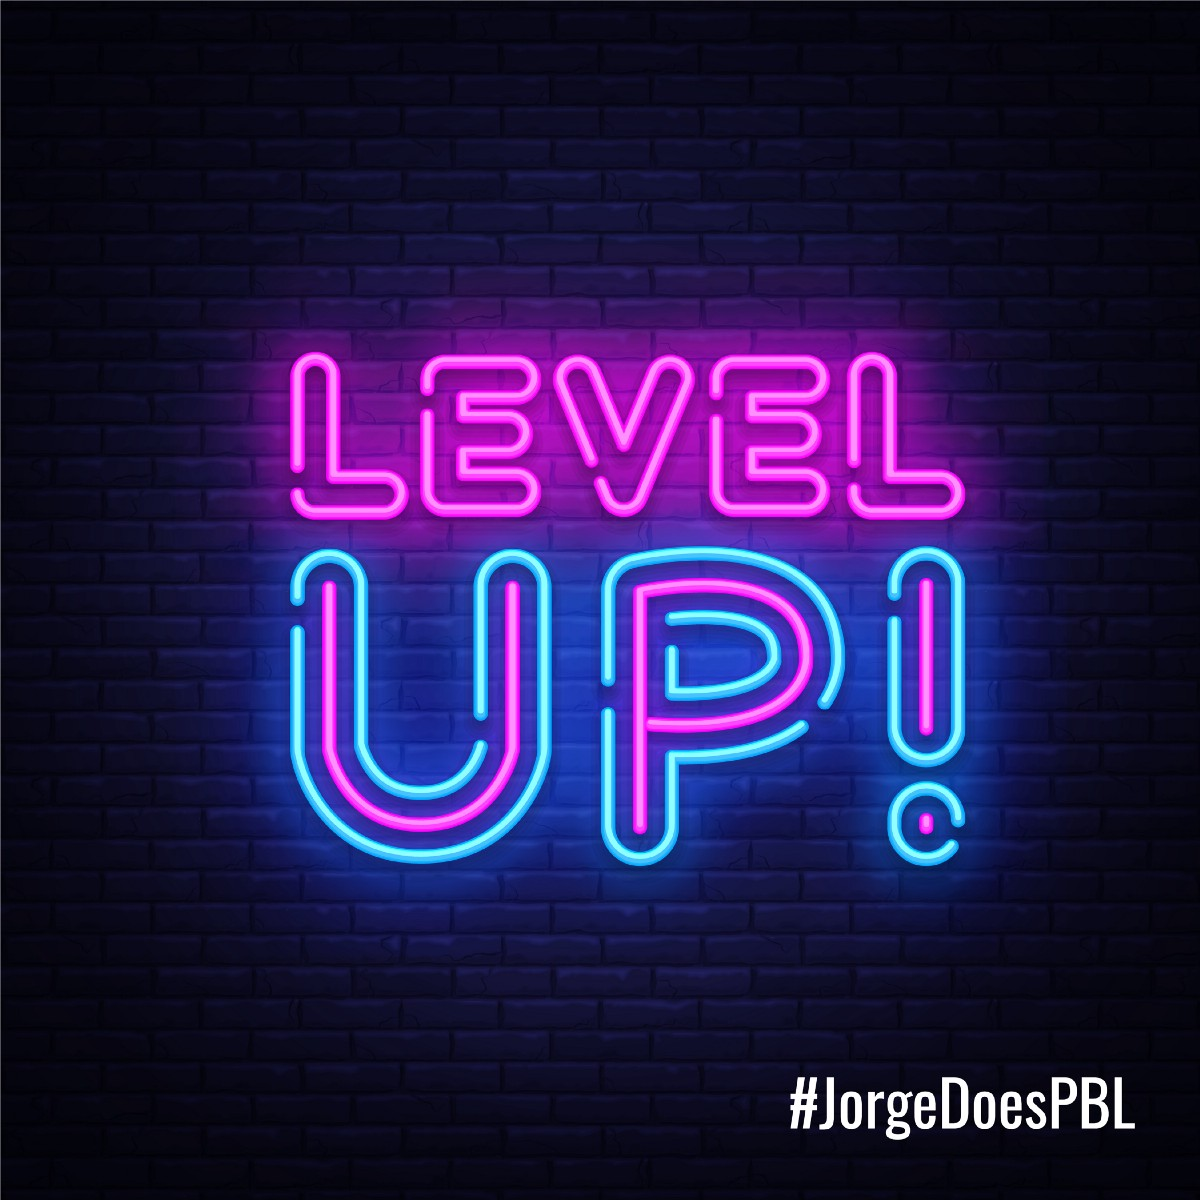 3 Ways for Educators to Reboot and Level Up Practice During COVID-19